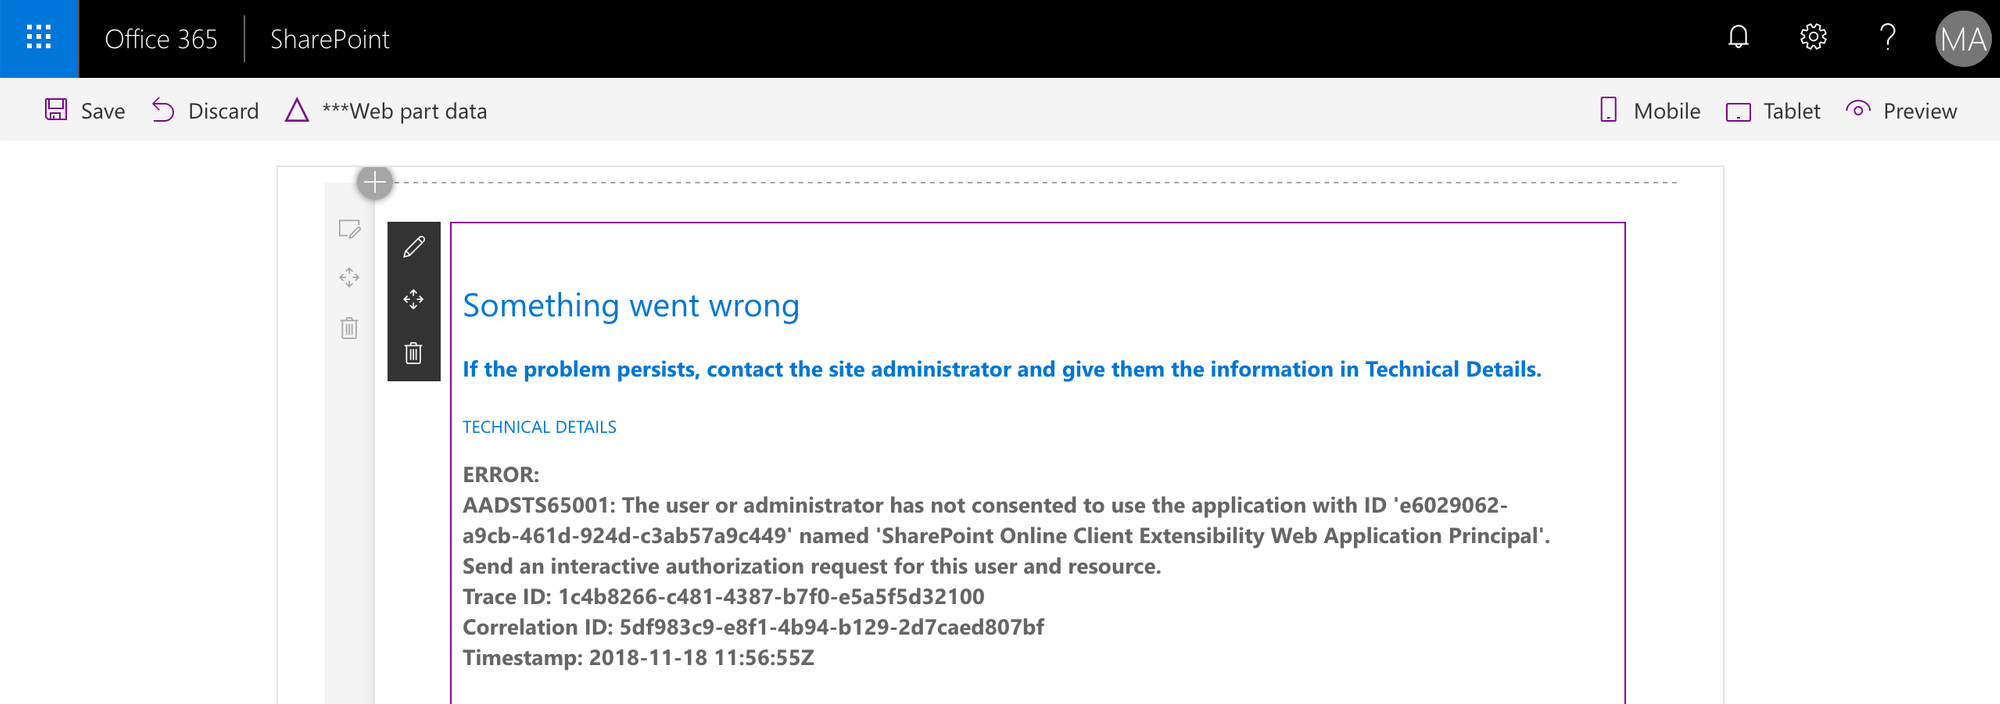 Azure AD error AADSTS65001 displayed by a SharePoint Framework web part